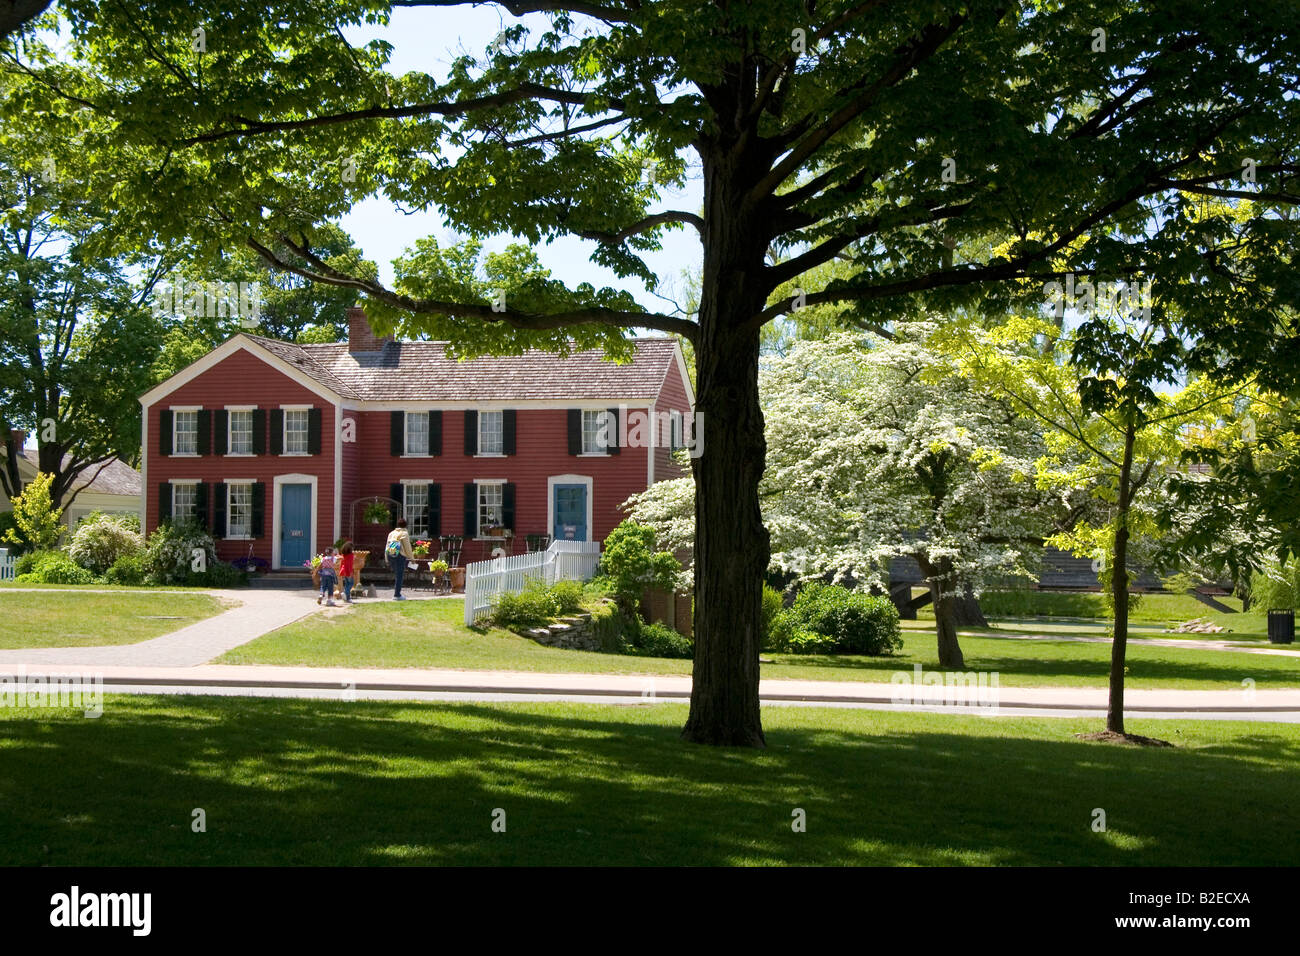 luther burbank birthplace in greenfield village at the henry ford in dearborn michigan stock photo